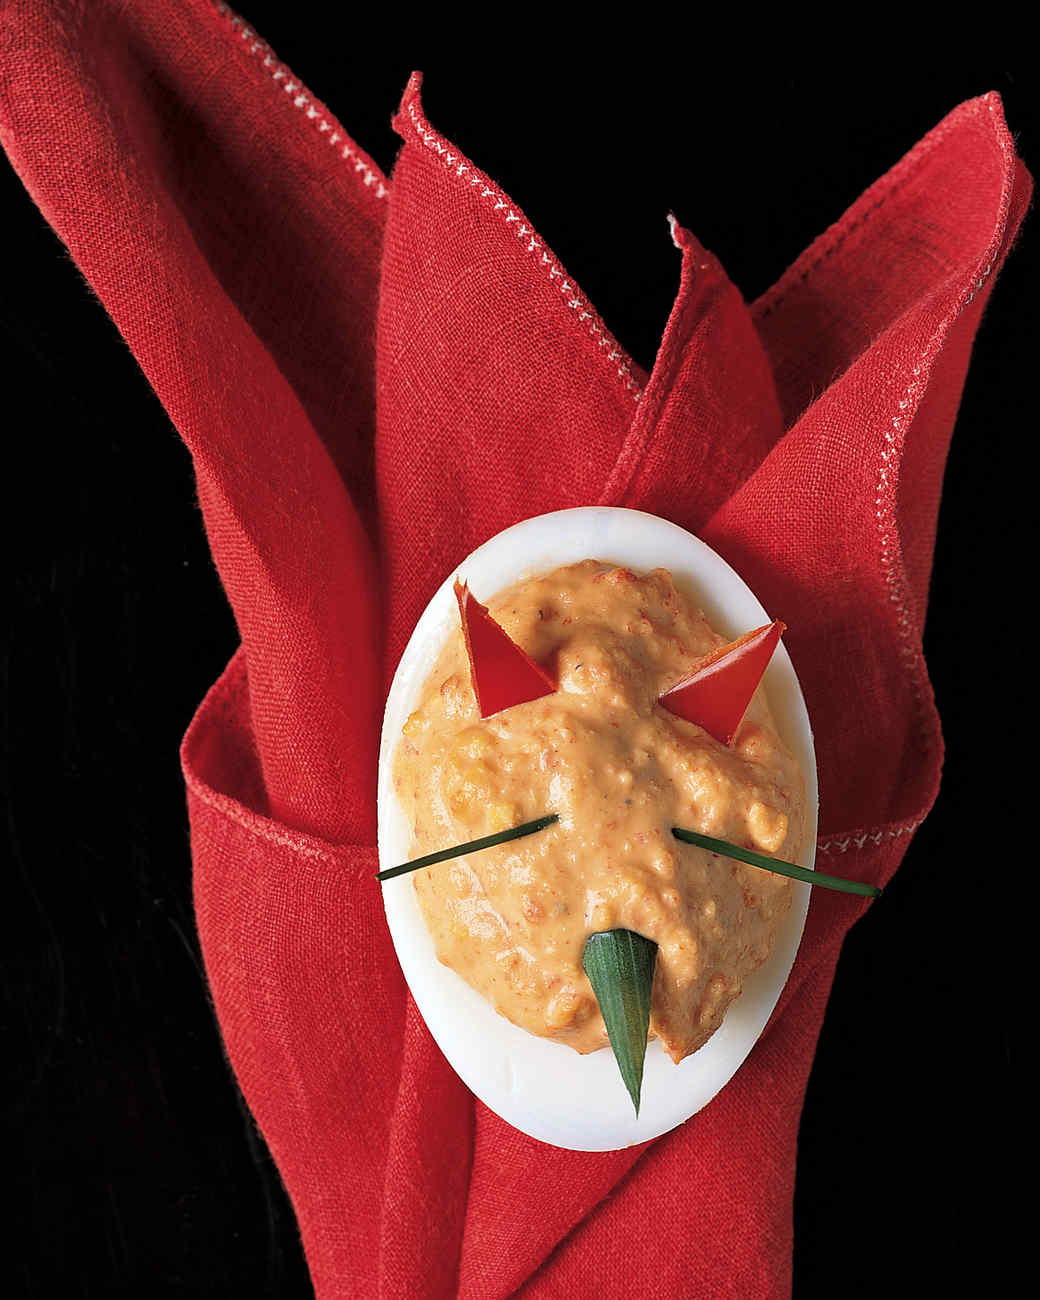 bedeviled-eggs-1010sip0904.jpg